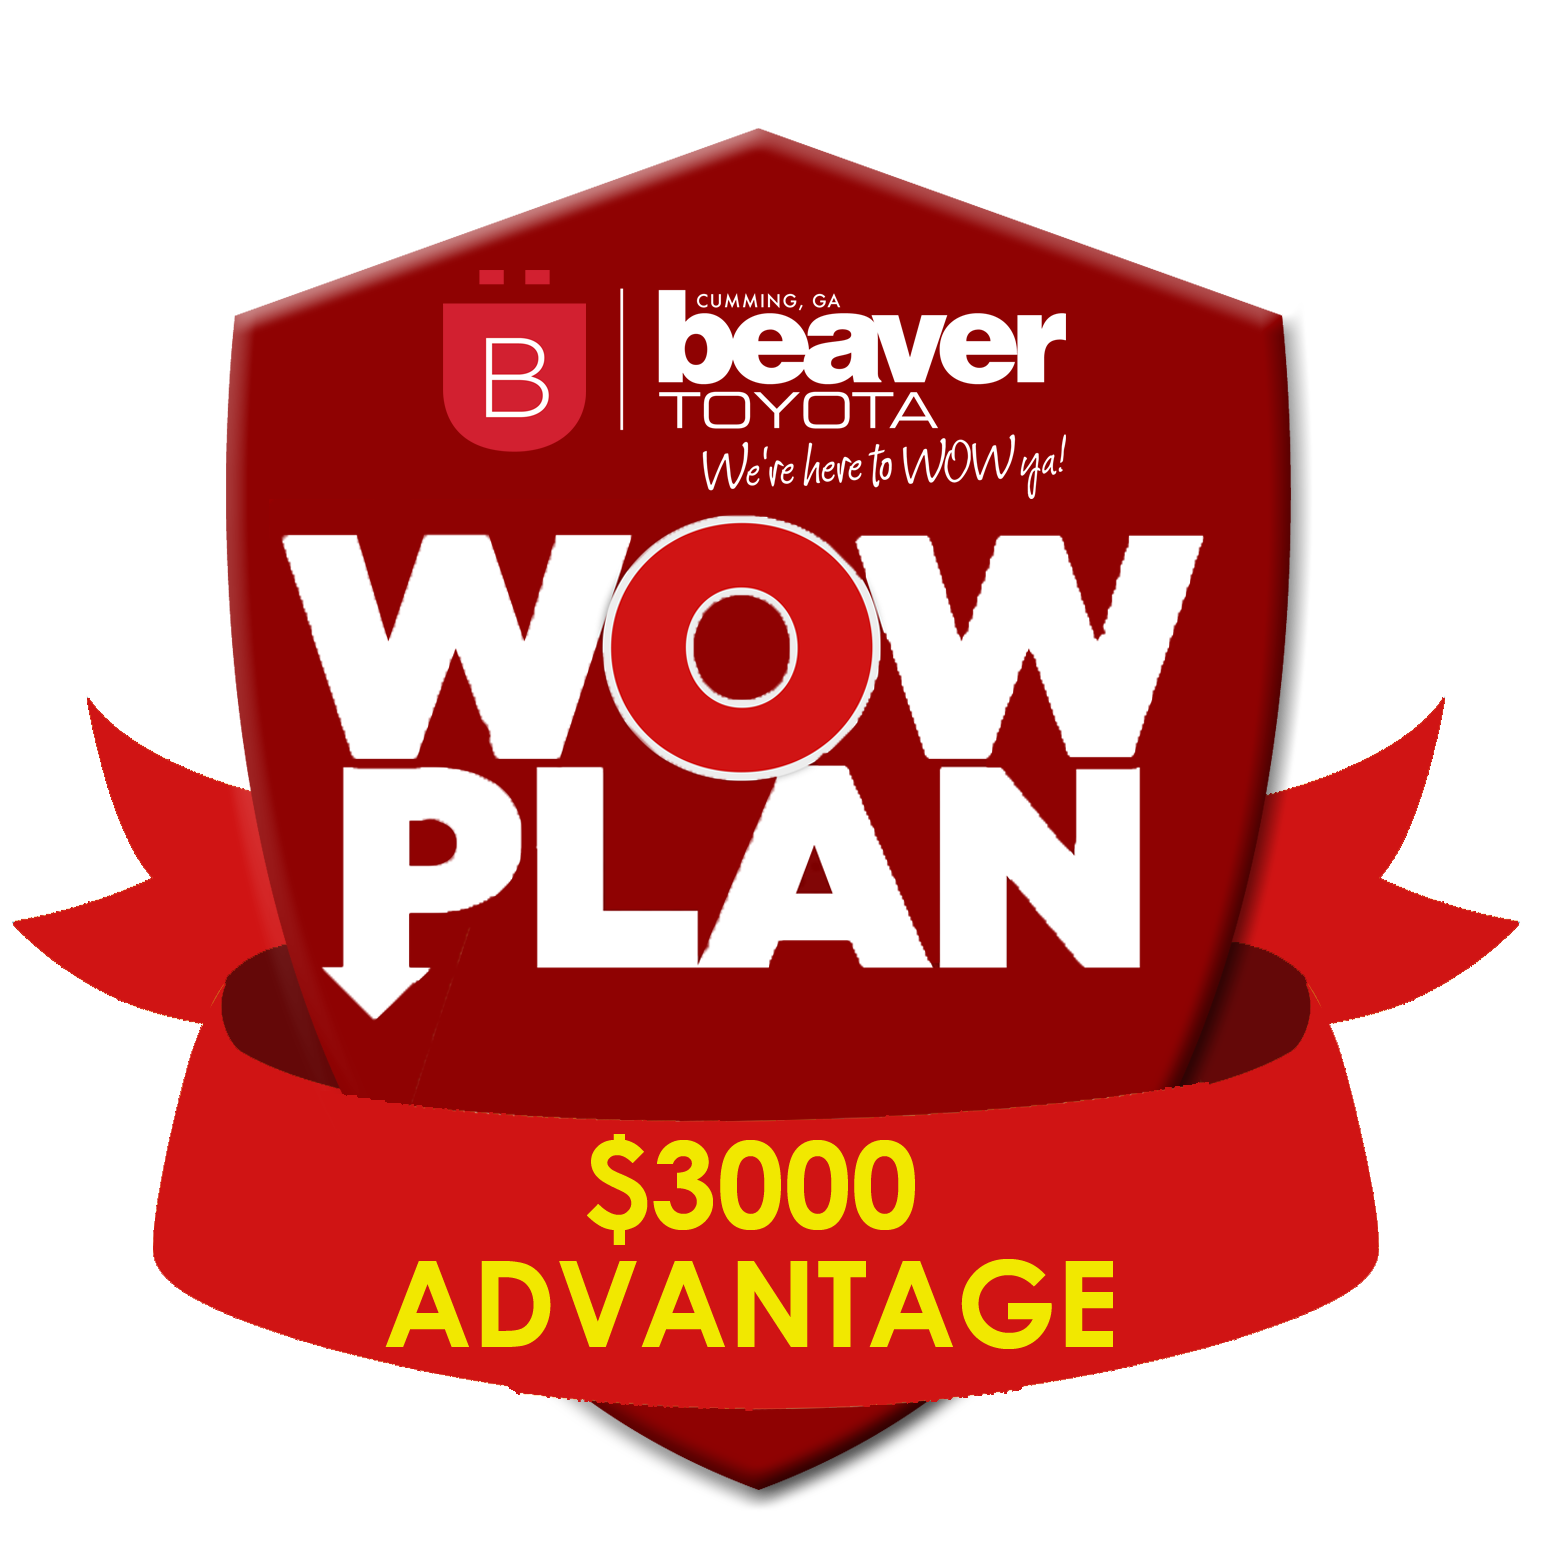 Wow Plan $3,000 Advantage